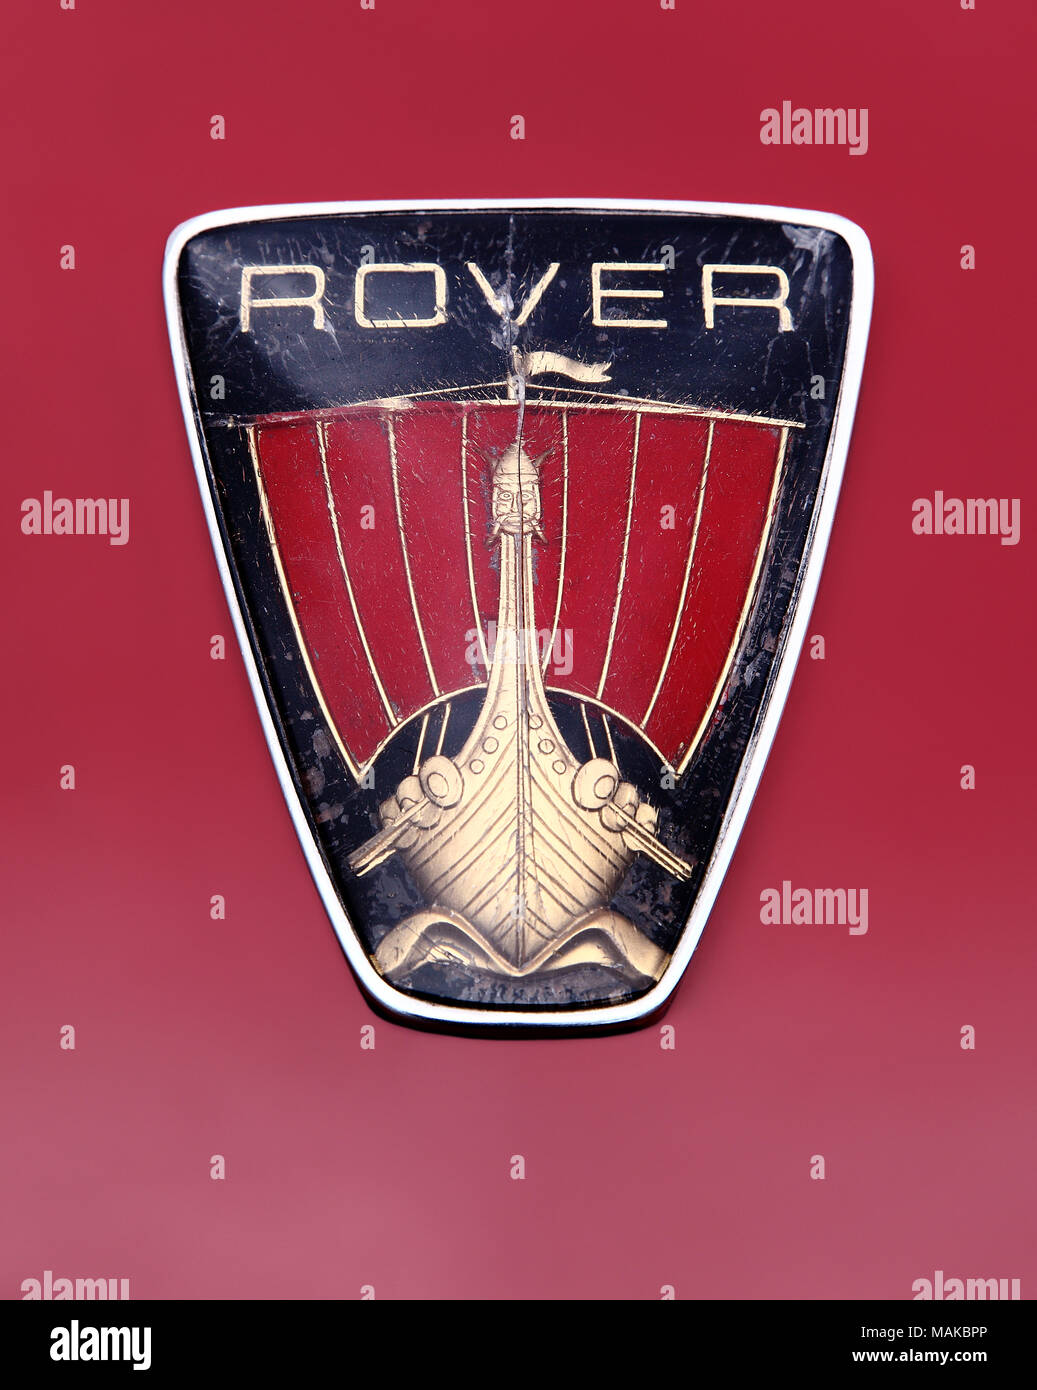 Rover viking ship logo, badge or hood ornament showing decades of wear and tear. - Stock Image